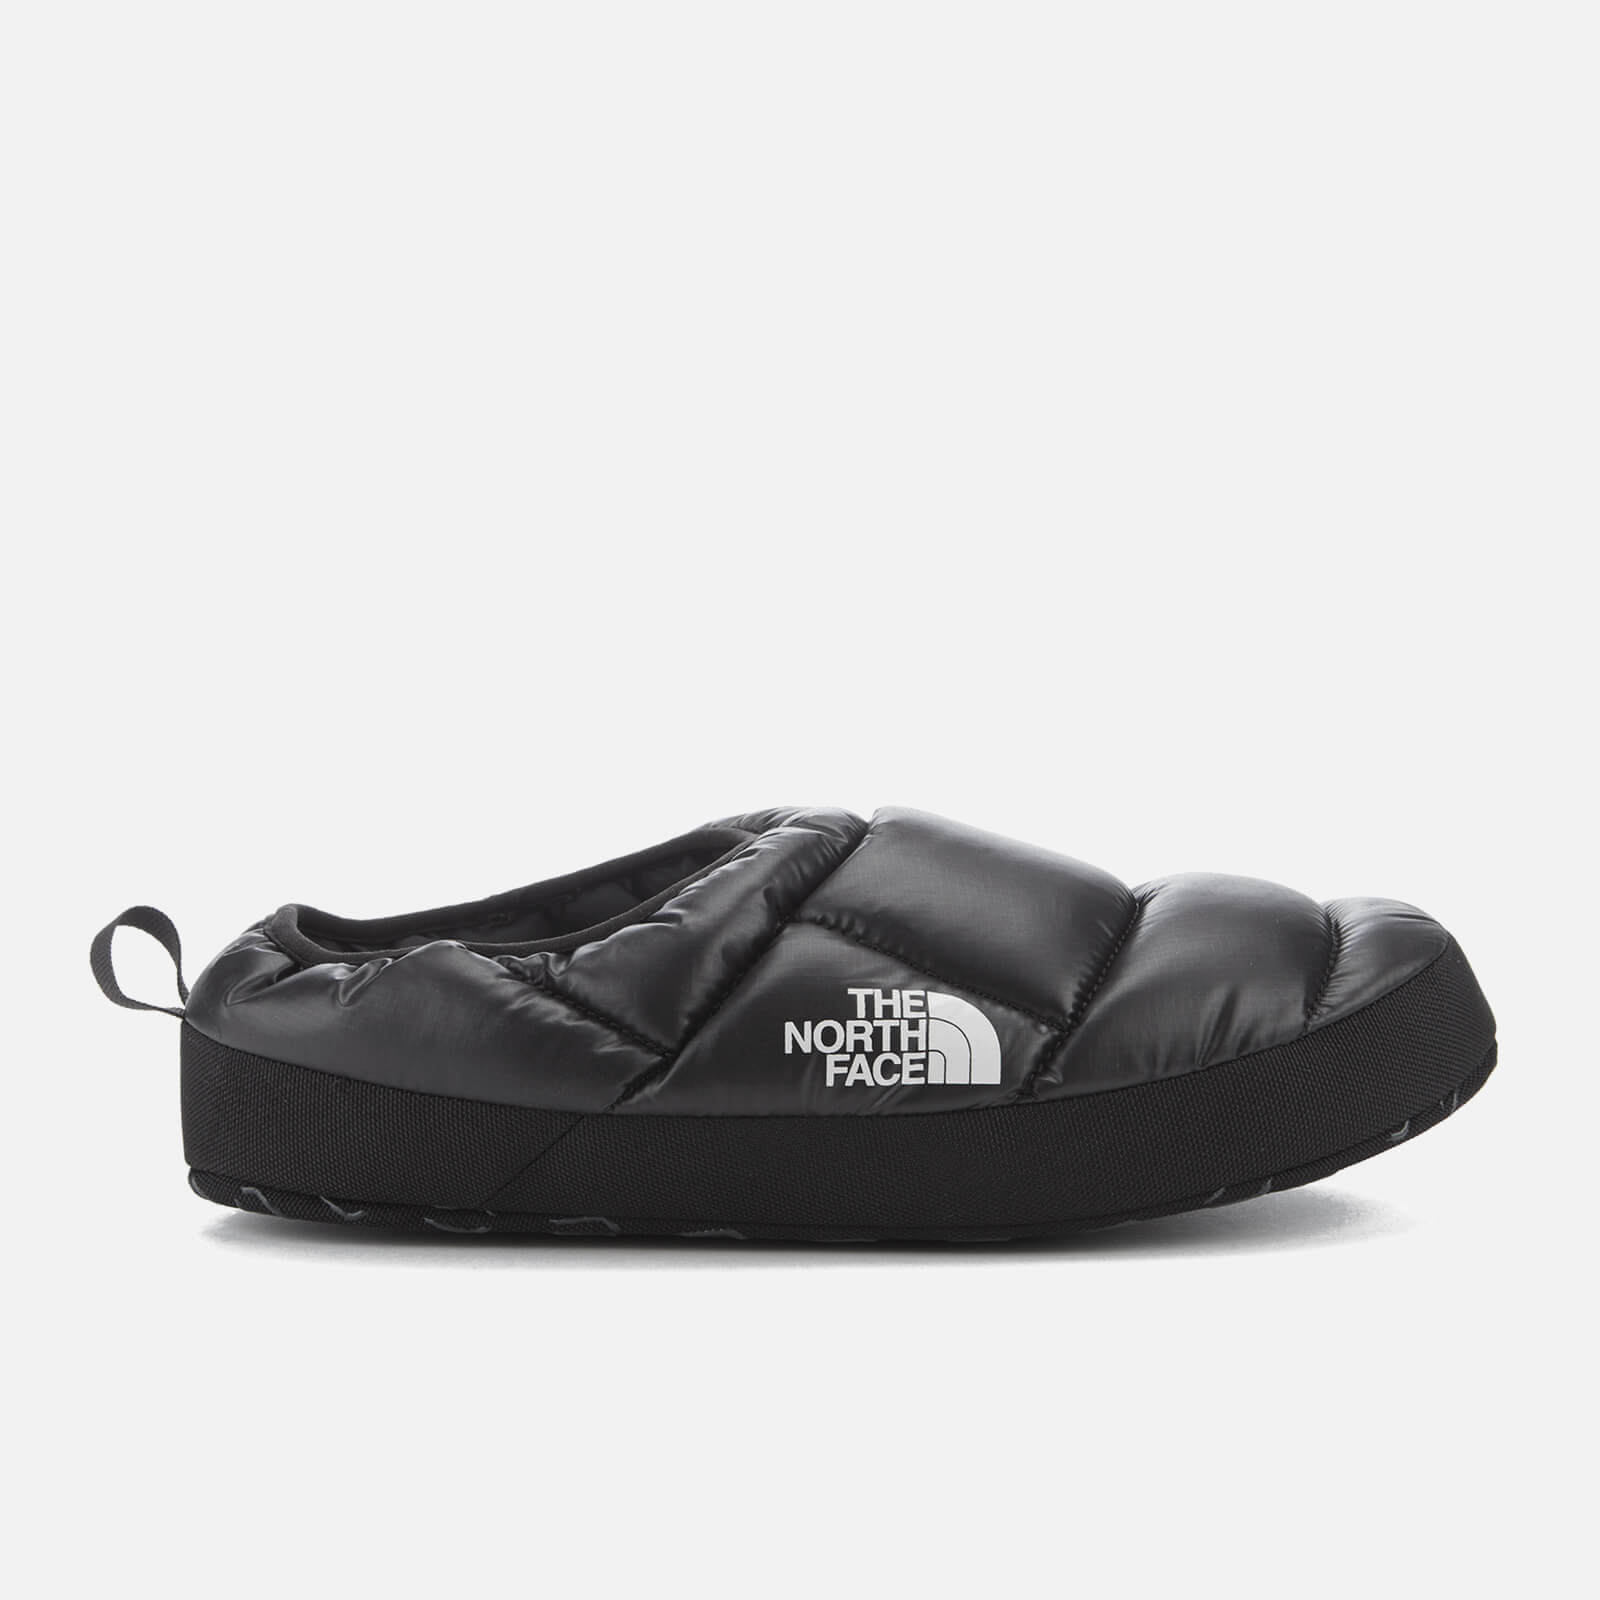 3285db926298 The North Face Men s NSE Tent Mule III Slippers - Black Herringbone  Clothing